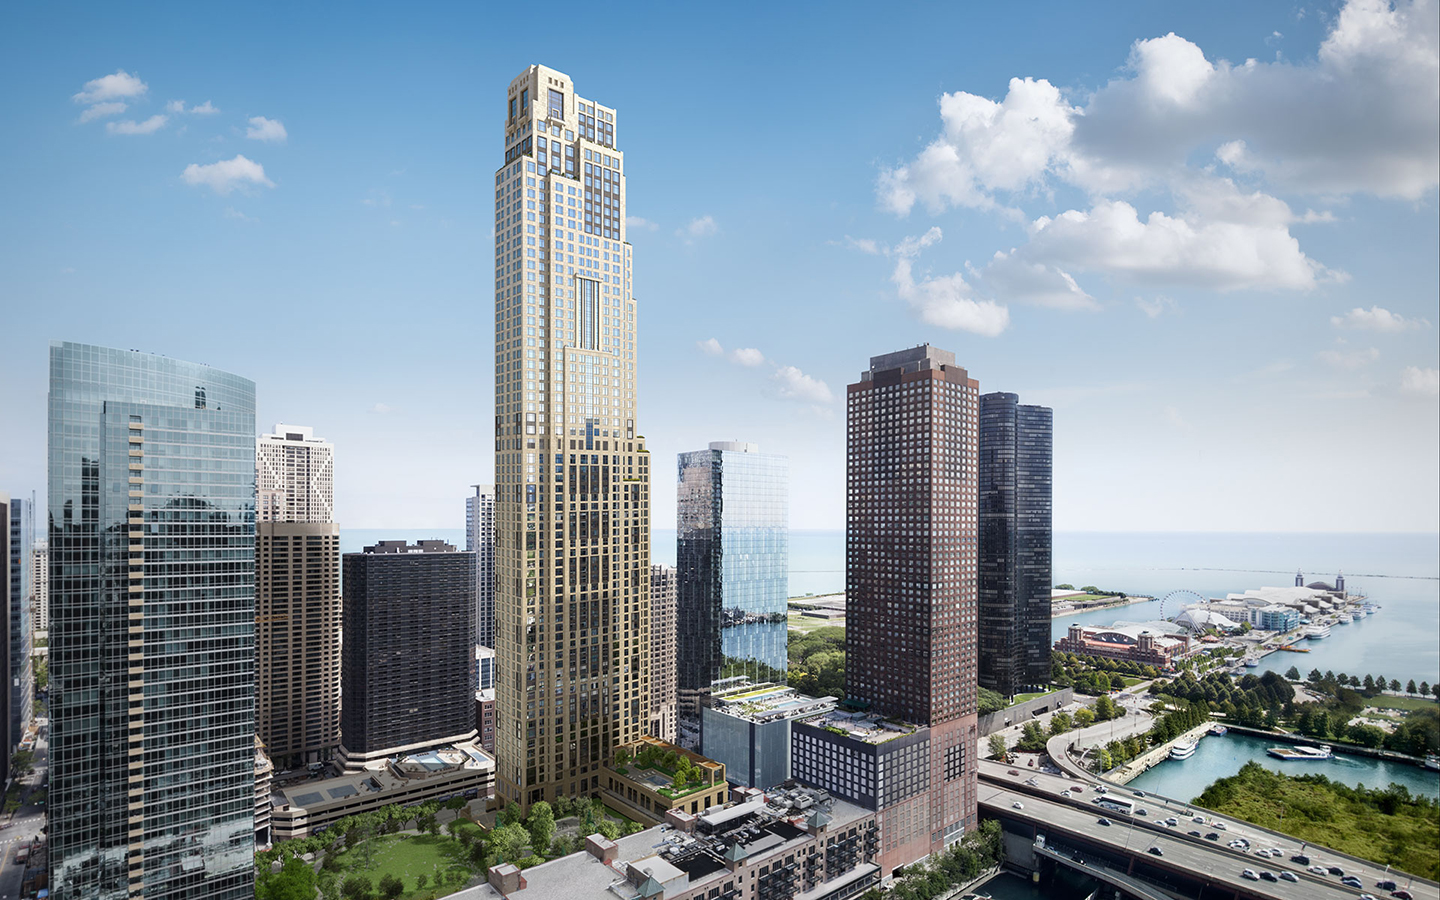 A Look At Gensler's 2,000-foot Conceptual Design For The